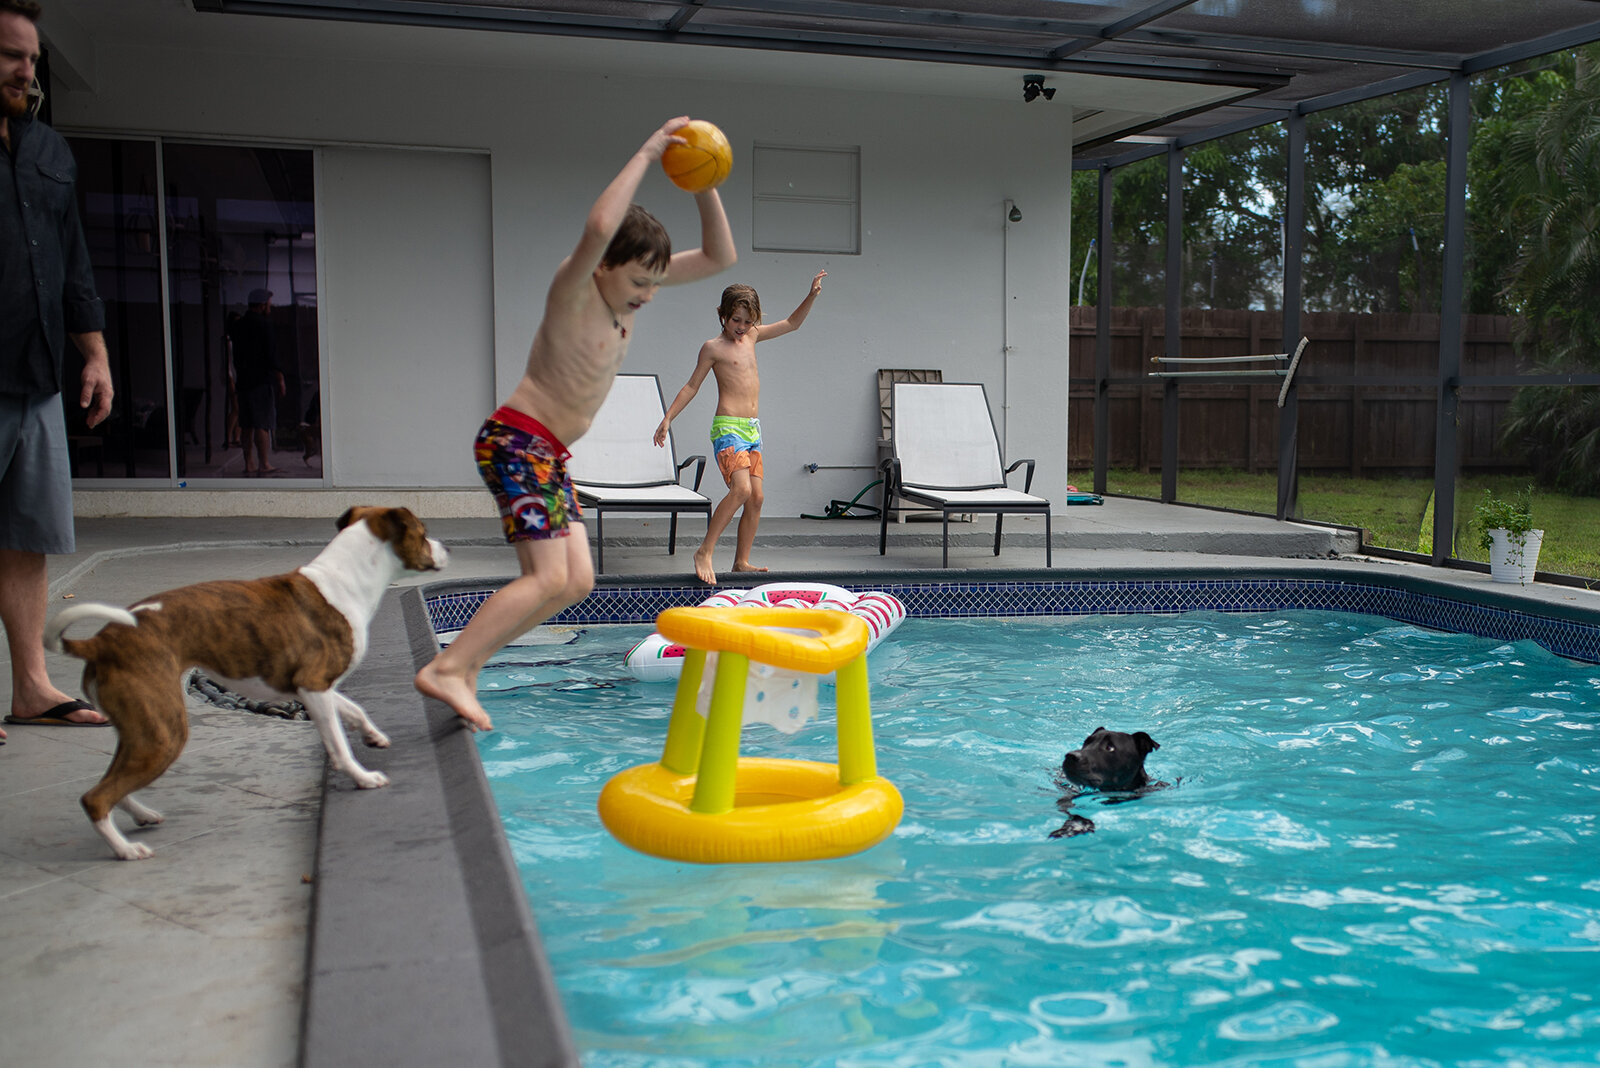 Boys and Dogs in Pool - South Florida Family Photography